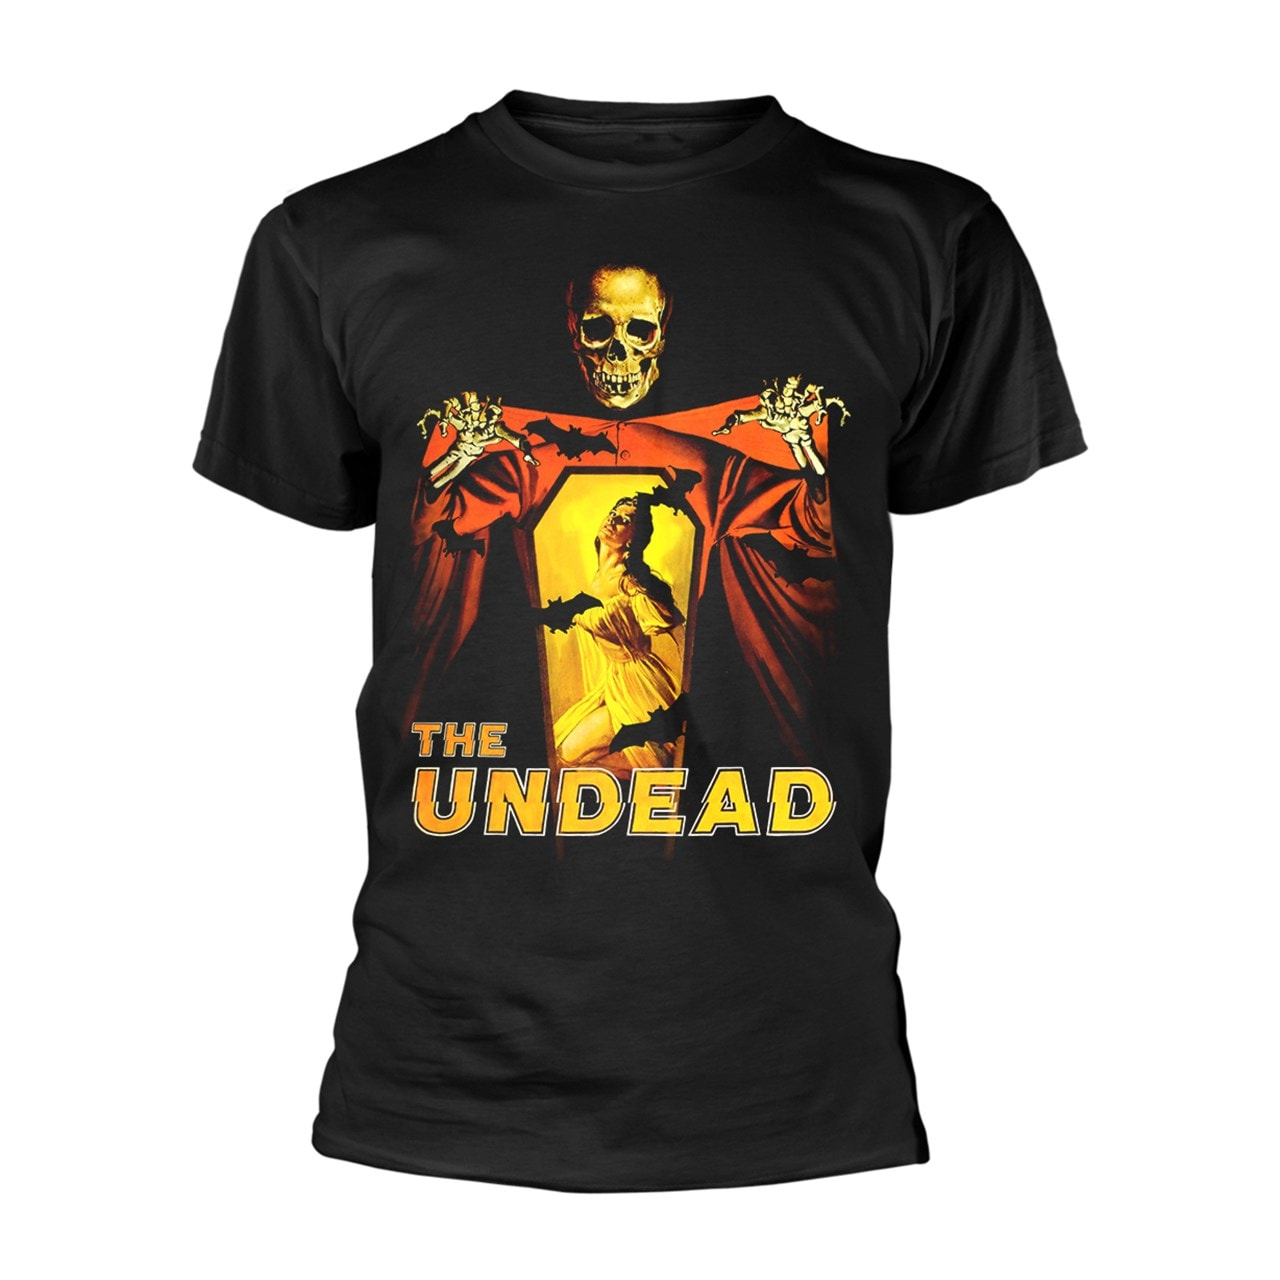 Plan 9: The Undead (Small) - 1